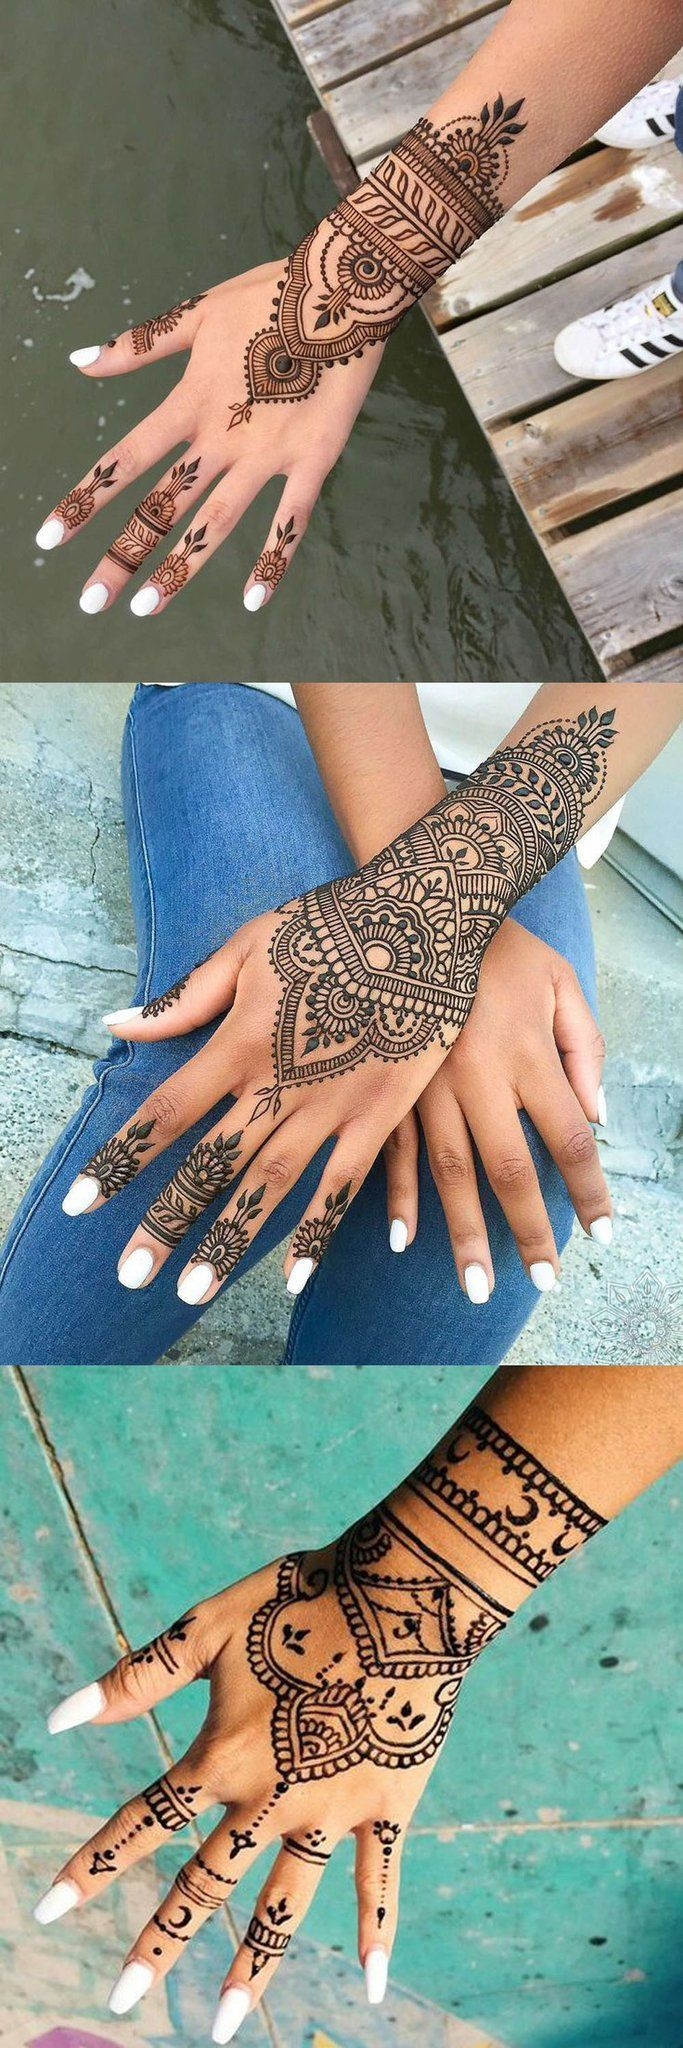 Black Hand Henna Mandala Tattoo Design Ideas With Meaning For Women